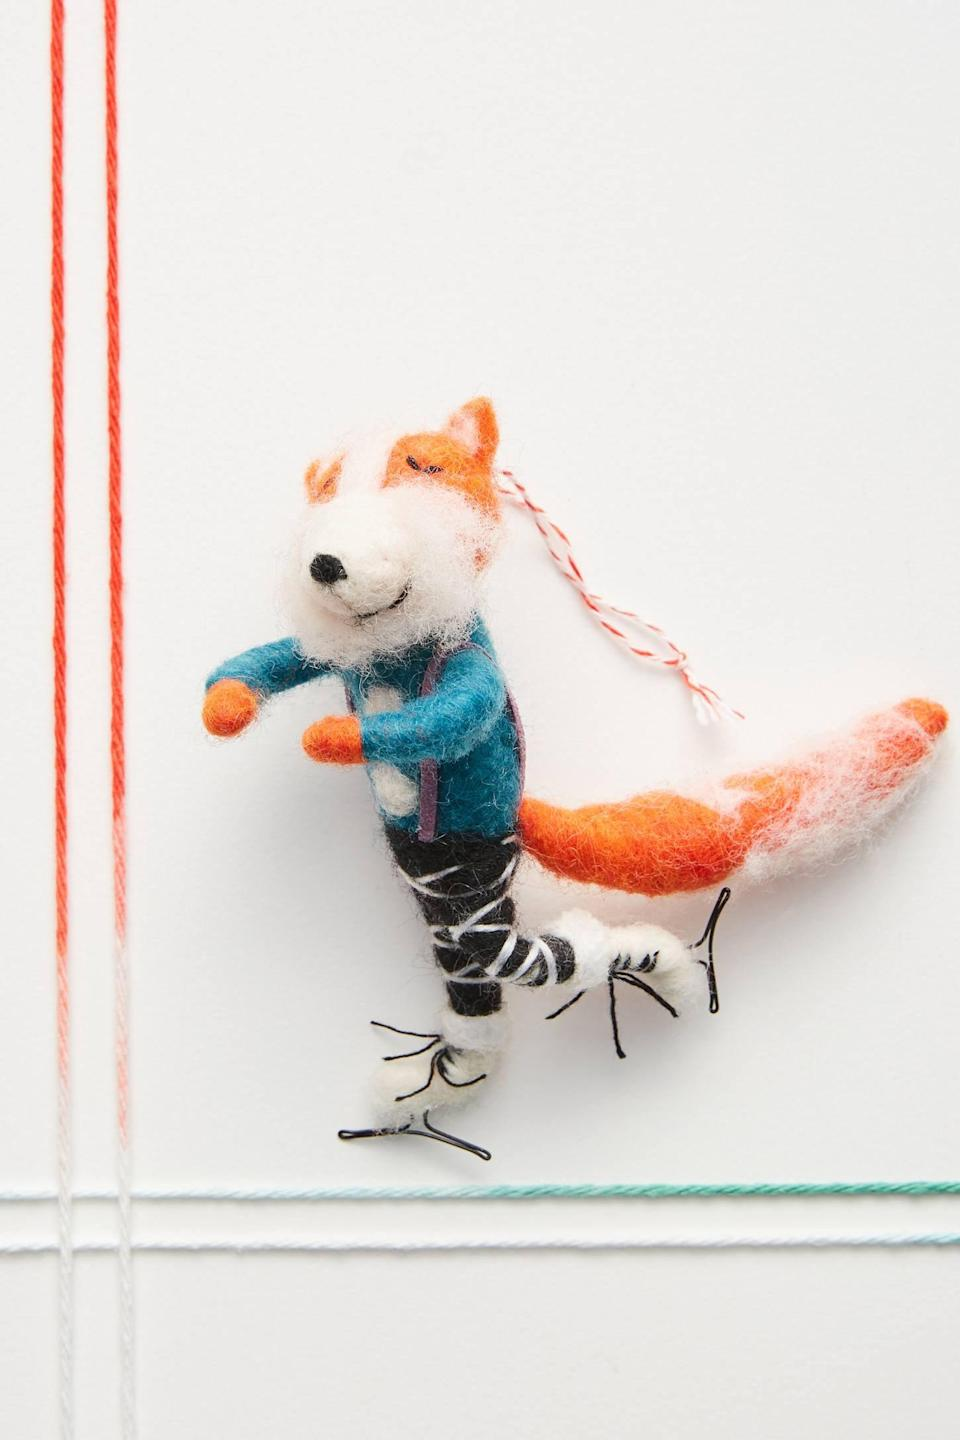 """<p>Incorporate whimsy into your tree with the <a href=""""https://www.popsugar.com/buy/Figure-Skating-Fox-Ornament-490610?p_name=Figure%20Skating%20Fox%20Ornament&retailer=anthropologie.com&pid=490610&price=18&evar1=casa%3Aus&evar9=46615300&evar98=https%3A%2F%2Fwww.popsugar.com%2Fhome%2Fphoto-gallery%2F46615300%2Fimage%2F46615530%2FFigure-Skating-Fox-Ornament&list1=shopping%2Canthropologie%2Choliday%2Cchristmas%2Cchristmas%20decorations%2Choliday%20decor%2Chome%20shopping&prop13=mobile&pdata=1"""" rel=""""nofollow noopener"""" class=""""link rapid-noclick-resp"""" target=""""_blank"""" data-ylk=""""slk:Figure Skating Fox Ornament"""">Figure Skating Fox Ornament</a> ($18).</p>"""